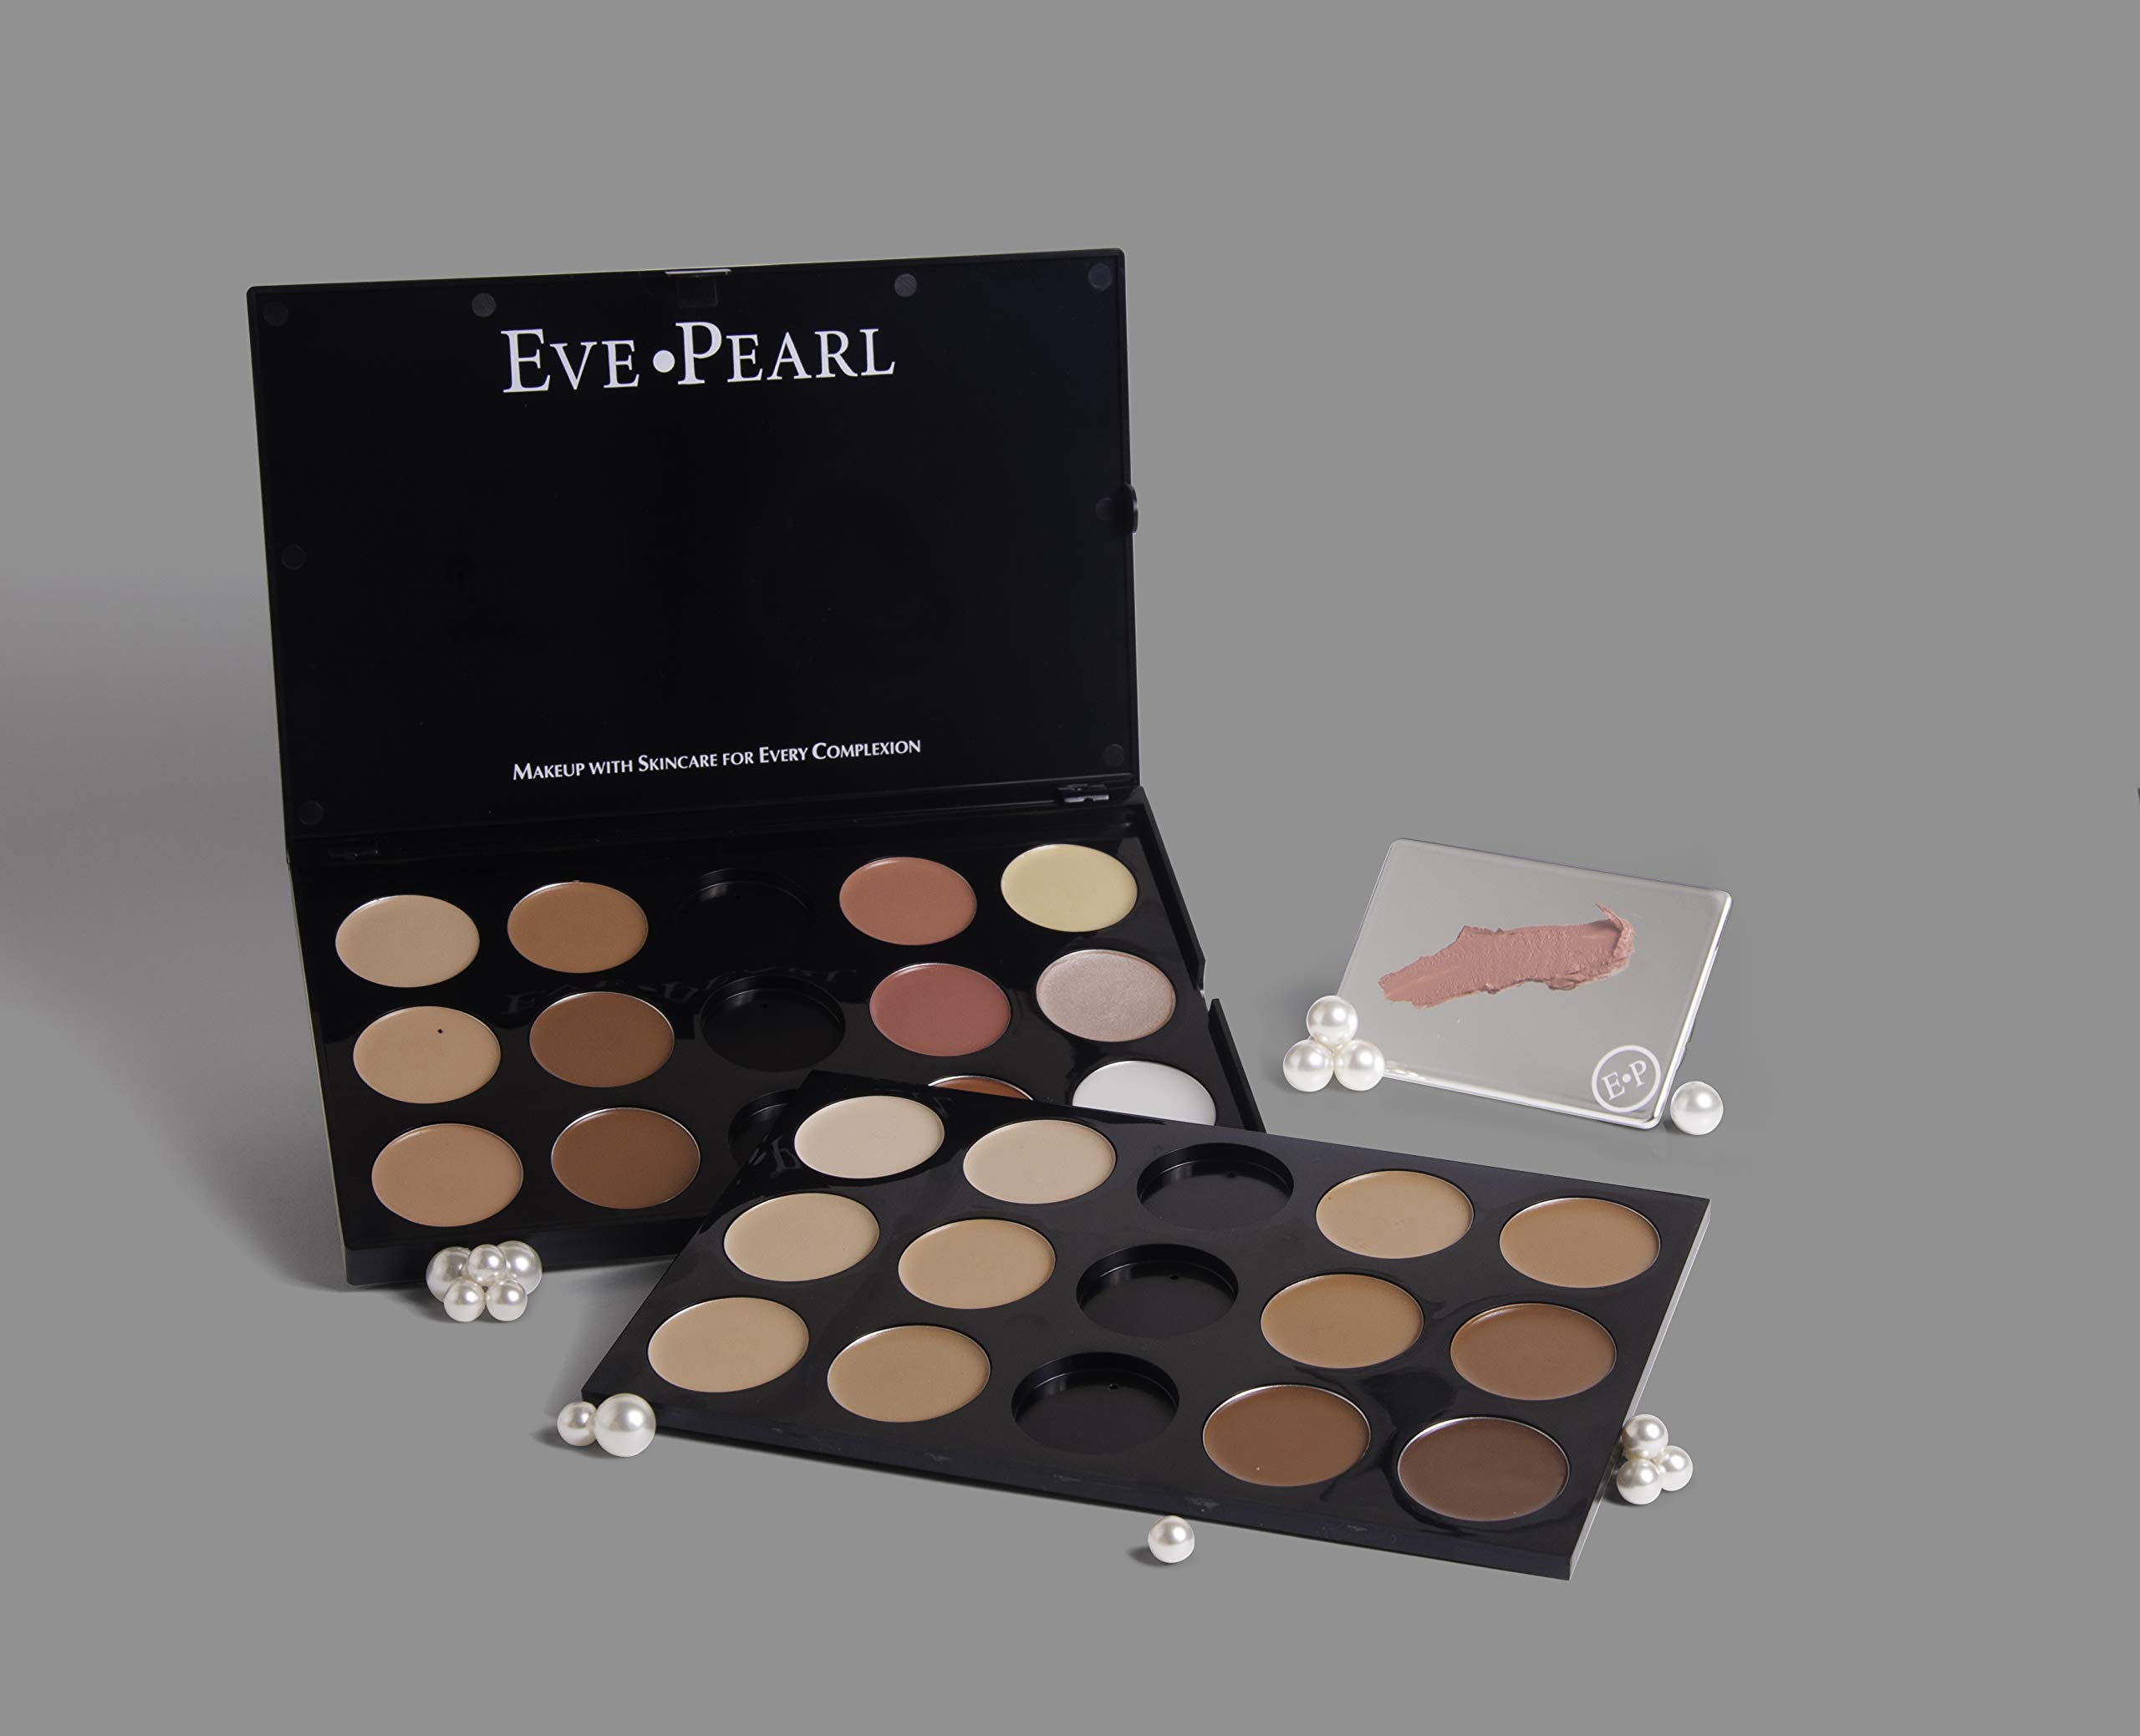 EVE PEARL HD Pro Palette Essential Makeup Artist Palettes Travel Friendly Make Up Set Beauty Sleek Palette